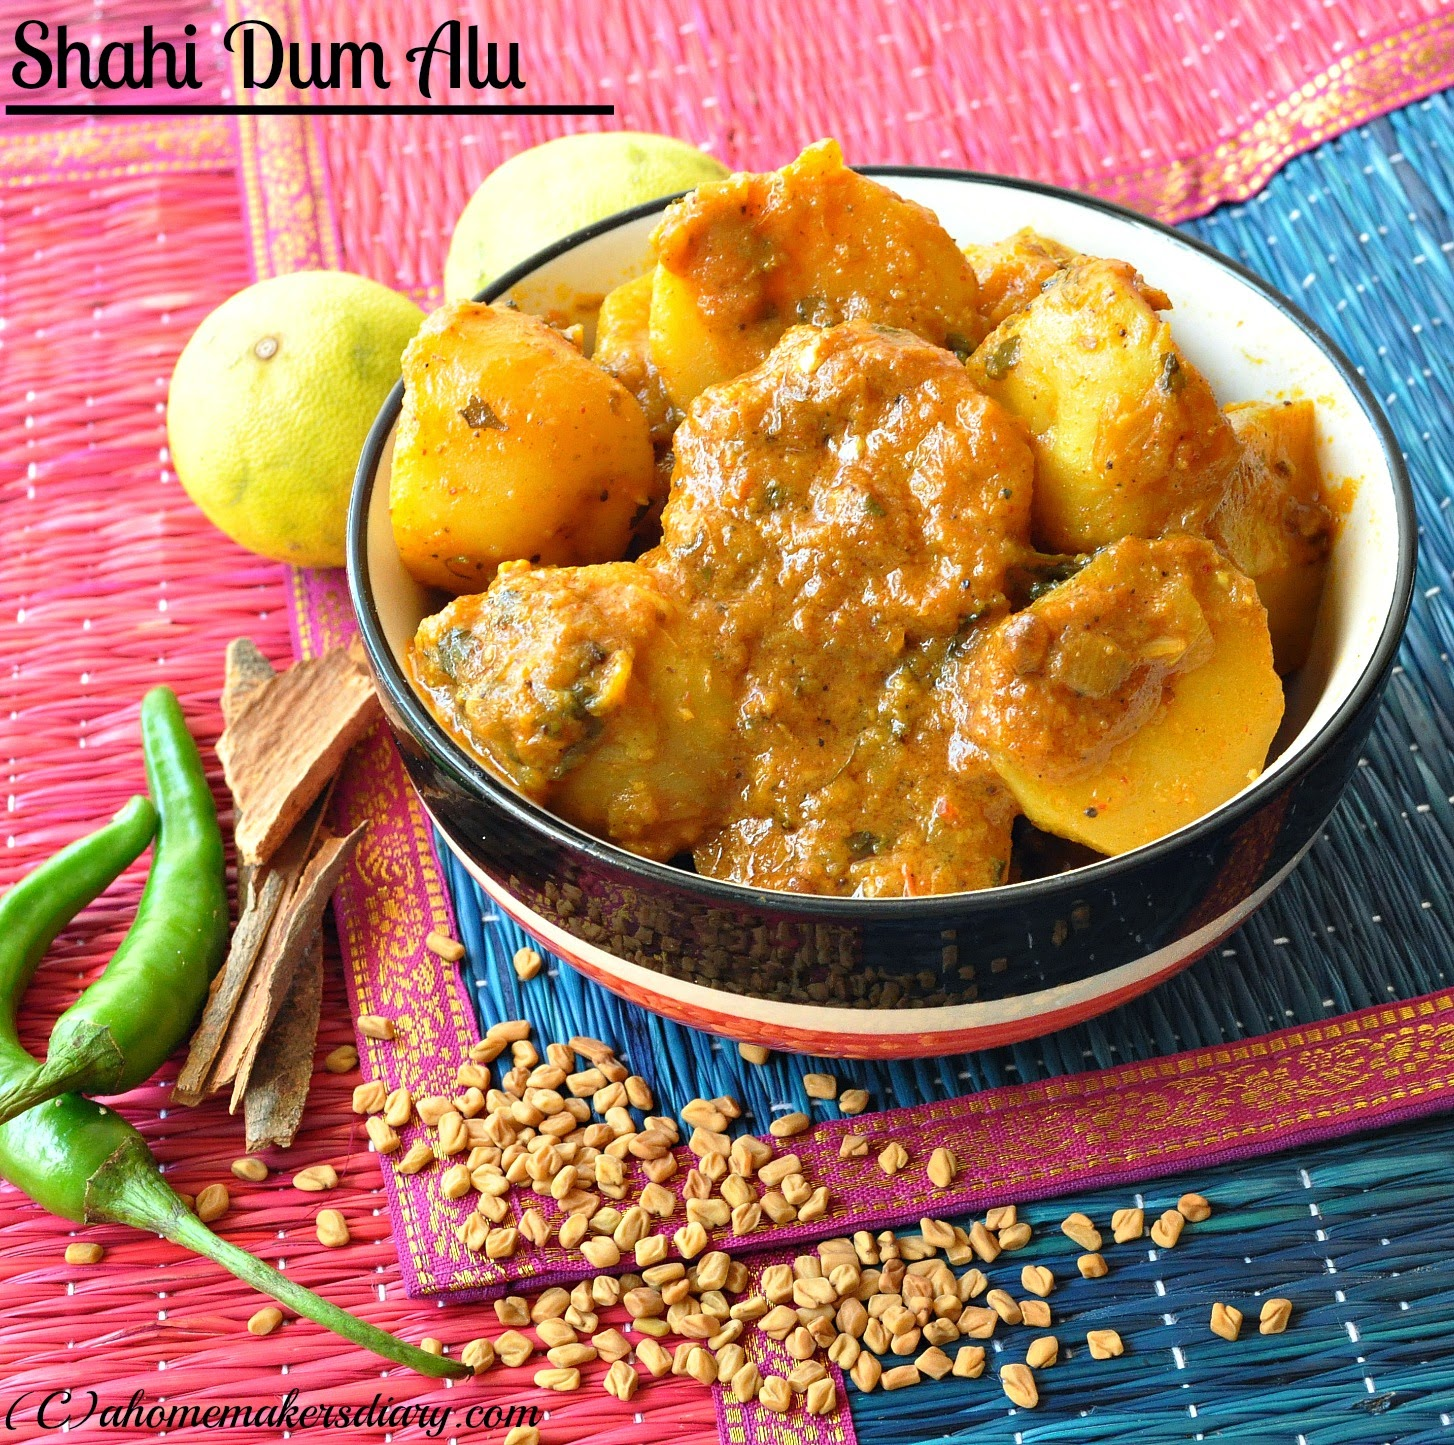 Shahi Dum Alu (New potatoes simmered in spicy gravy)